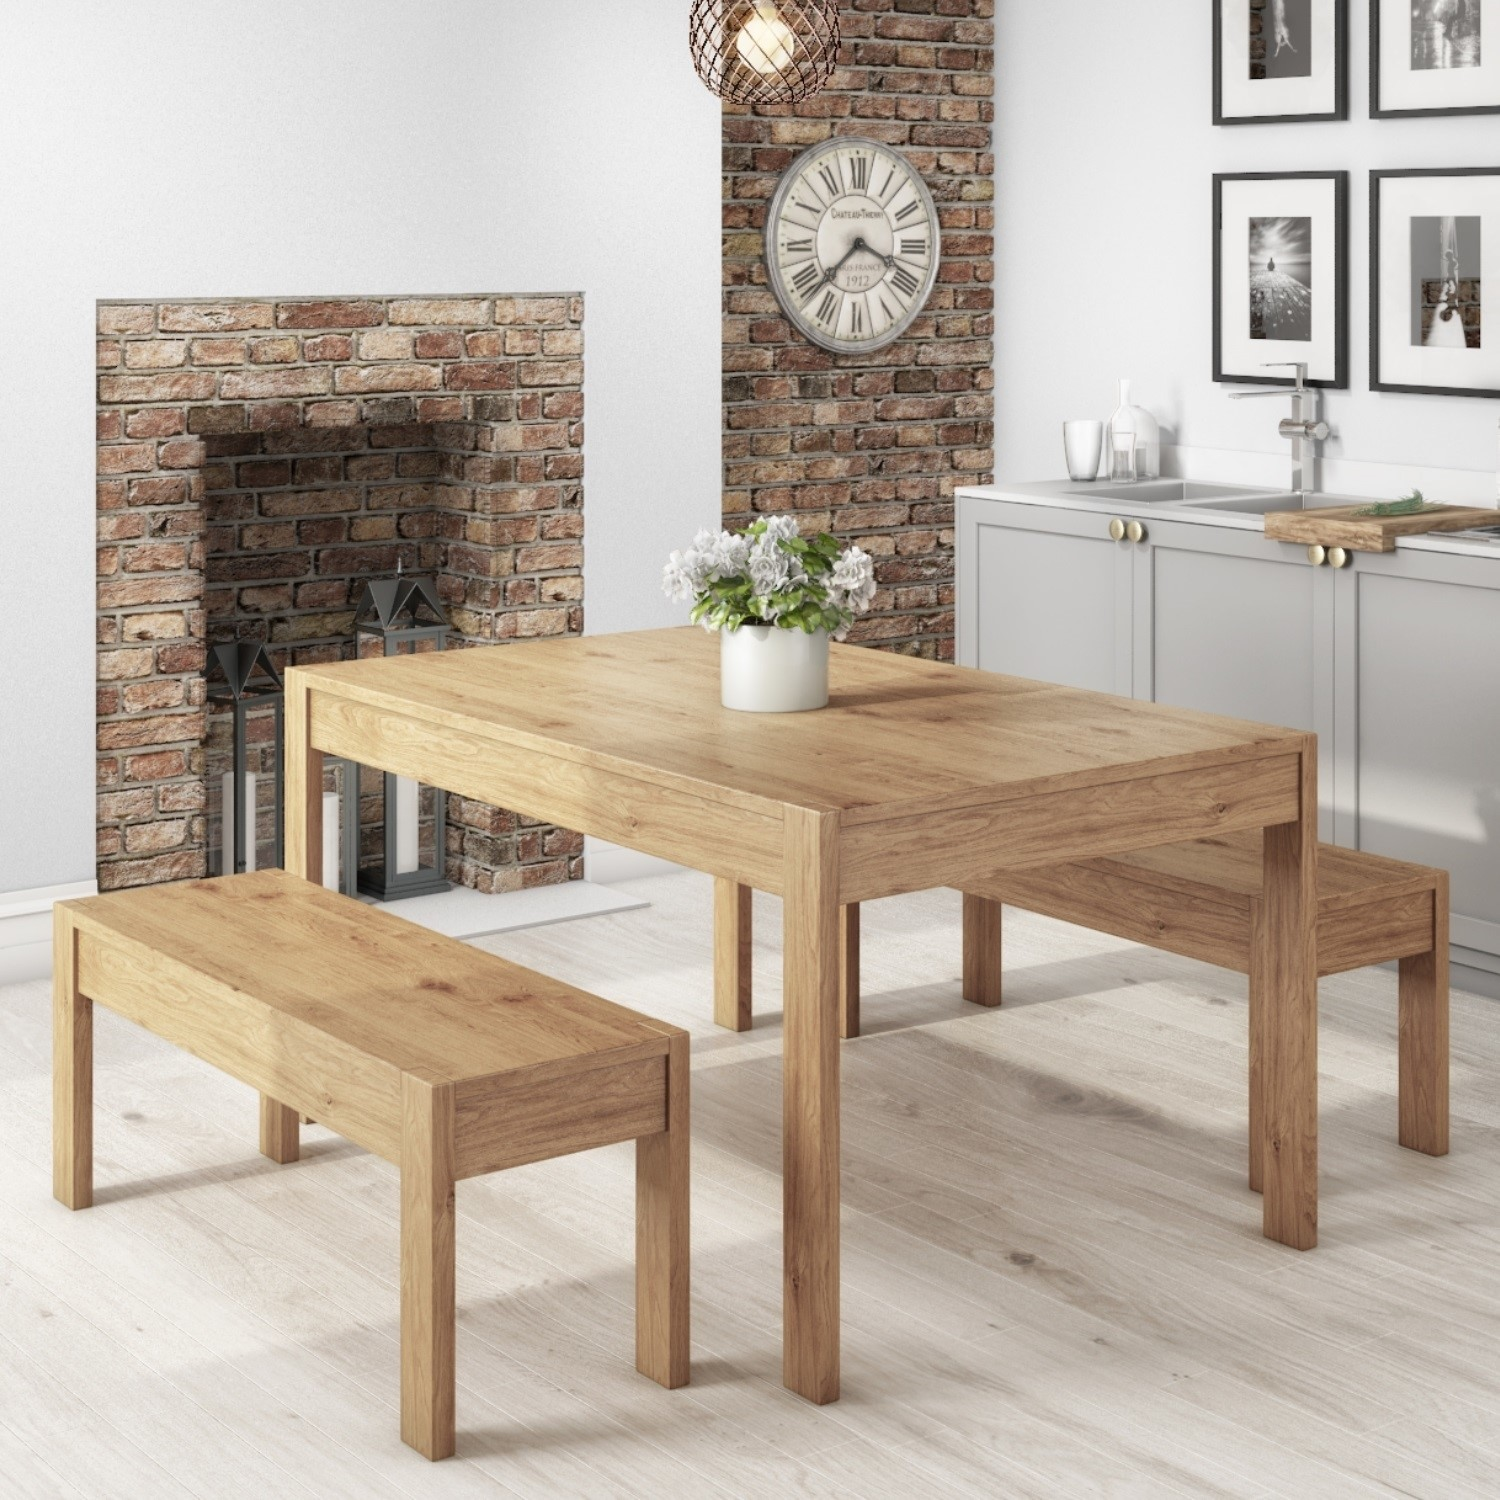 Exceptionnel Emerson Solid Pine Dining Table Set   Includes 2 Solid Pine Benches